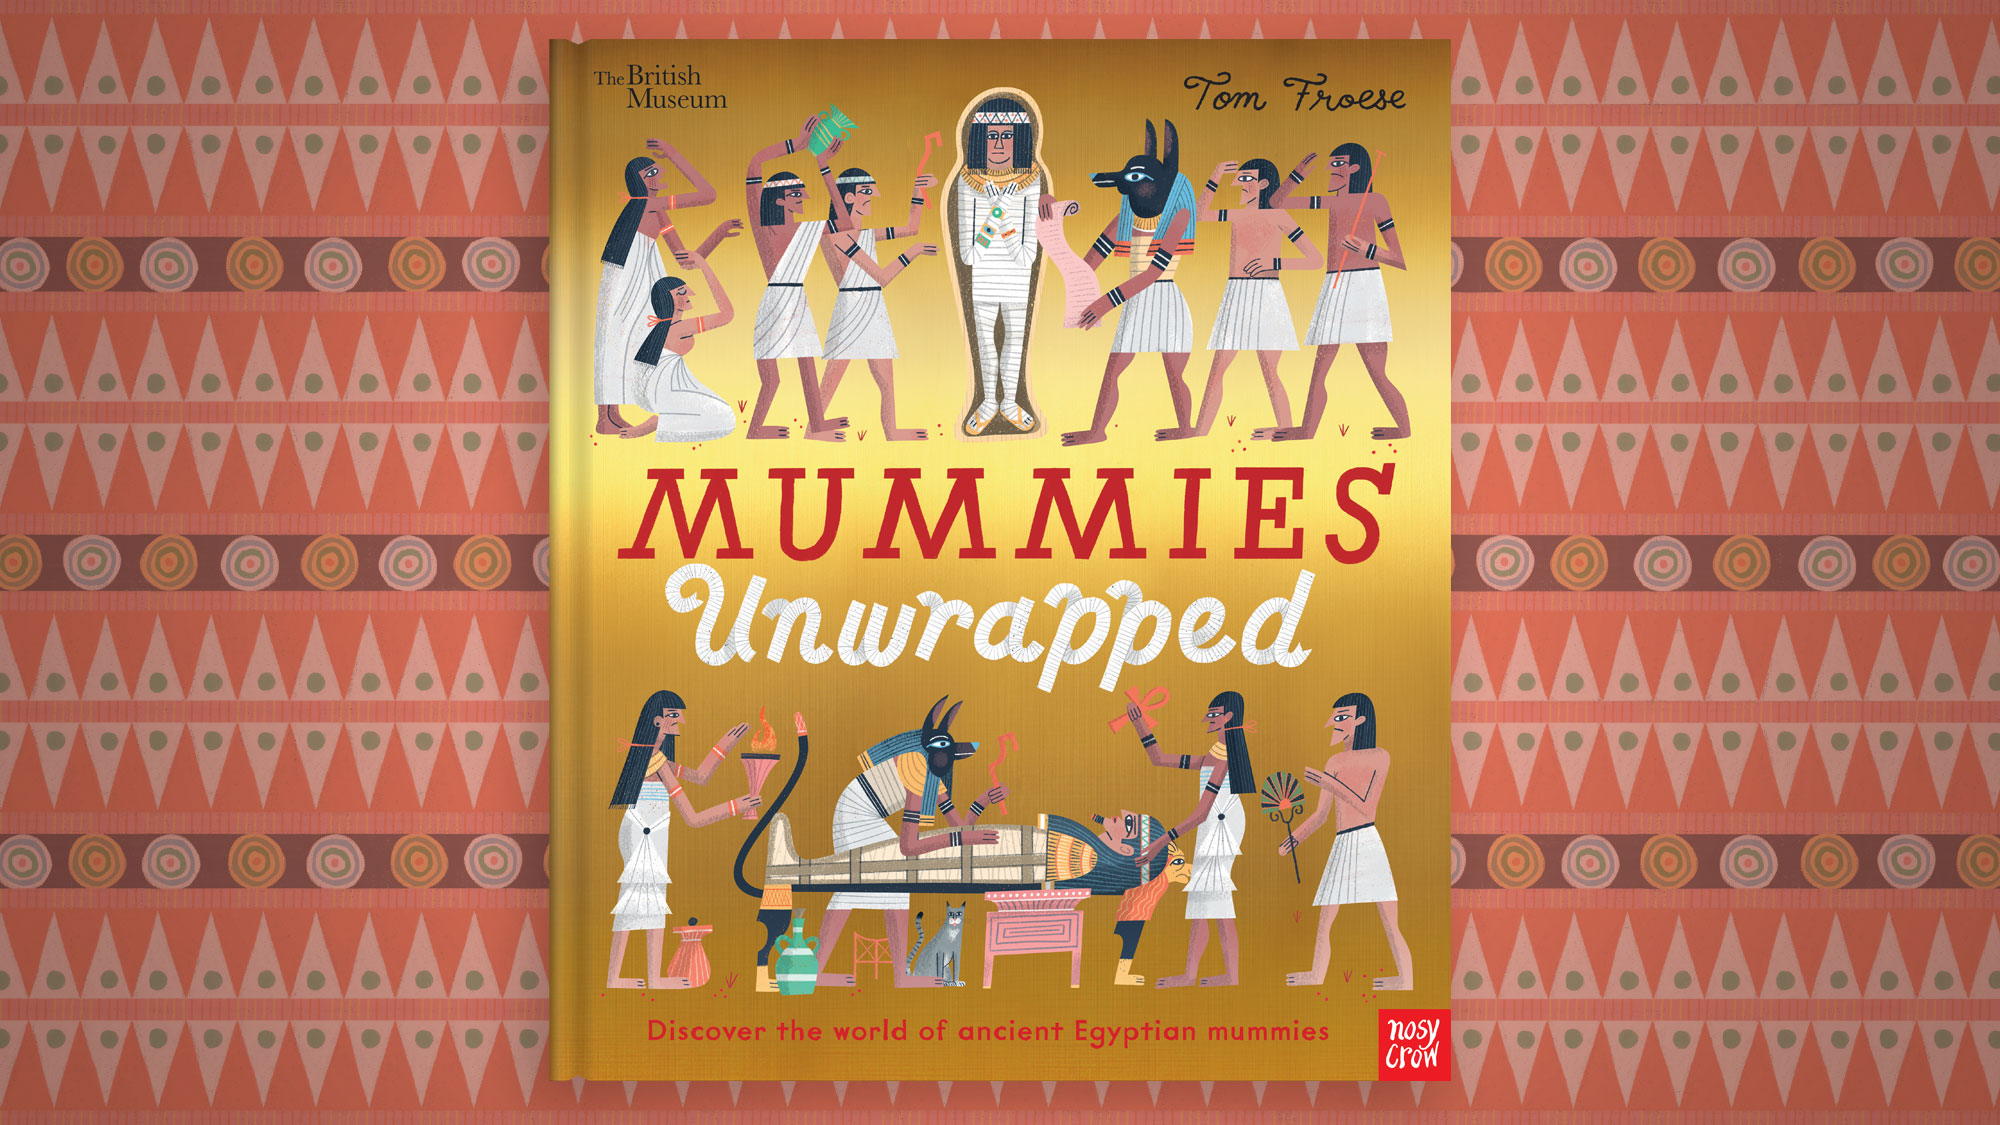 Take a look inside Mummies Unwrapped –a fascinating guide to ancient Egyptian mummies!